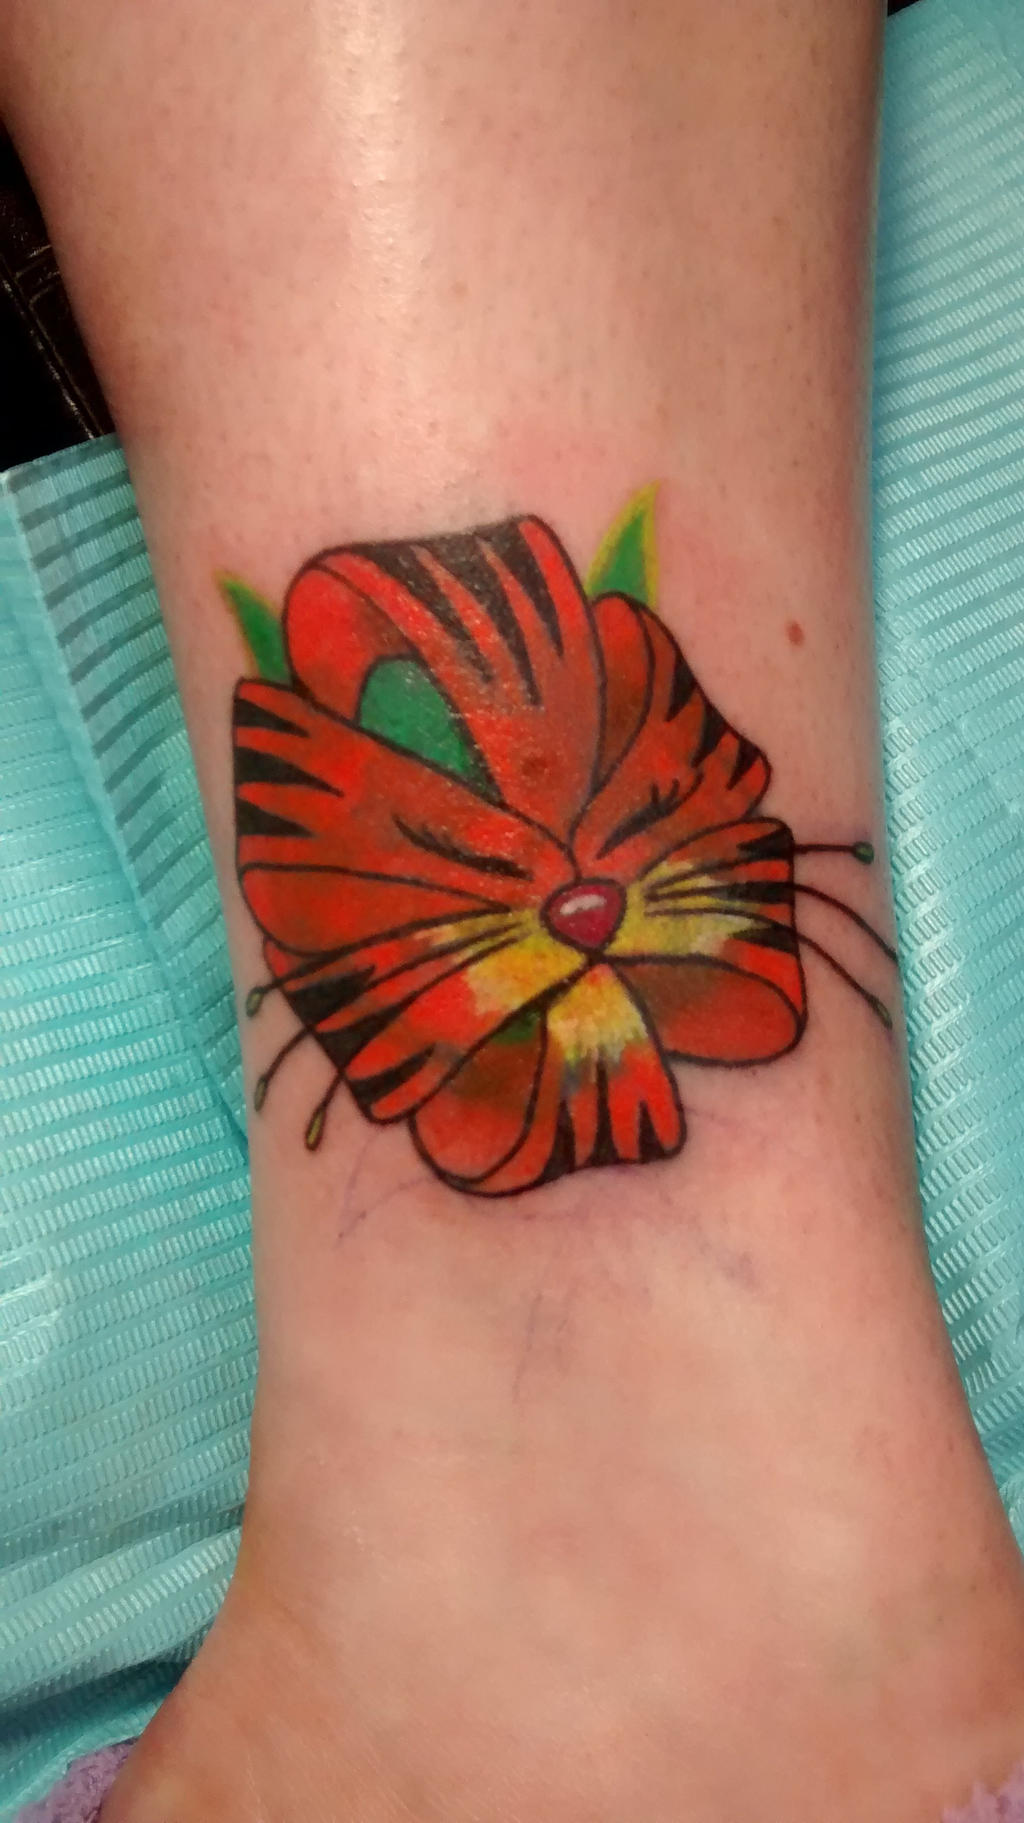 Tiger lily tattoos cinderella story for kids with pictures coloring 25 amazing tiger lily tattoo designs tattooeasily dinocroinfo tiger lily flower tattoo by mentalstateofmind d8jo5xt k25 amazing tiger lily tattoo designs izmirmasajfo